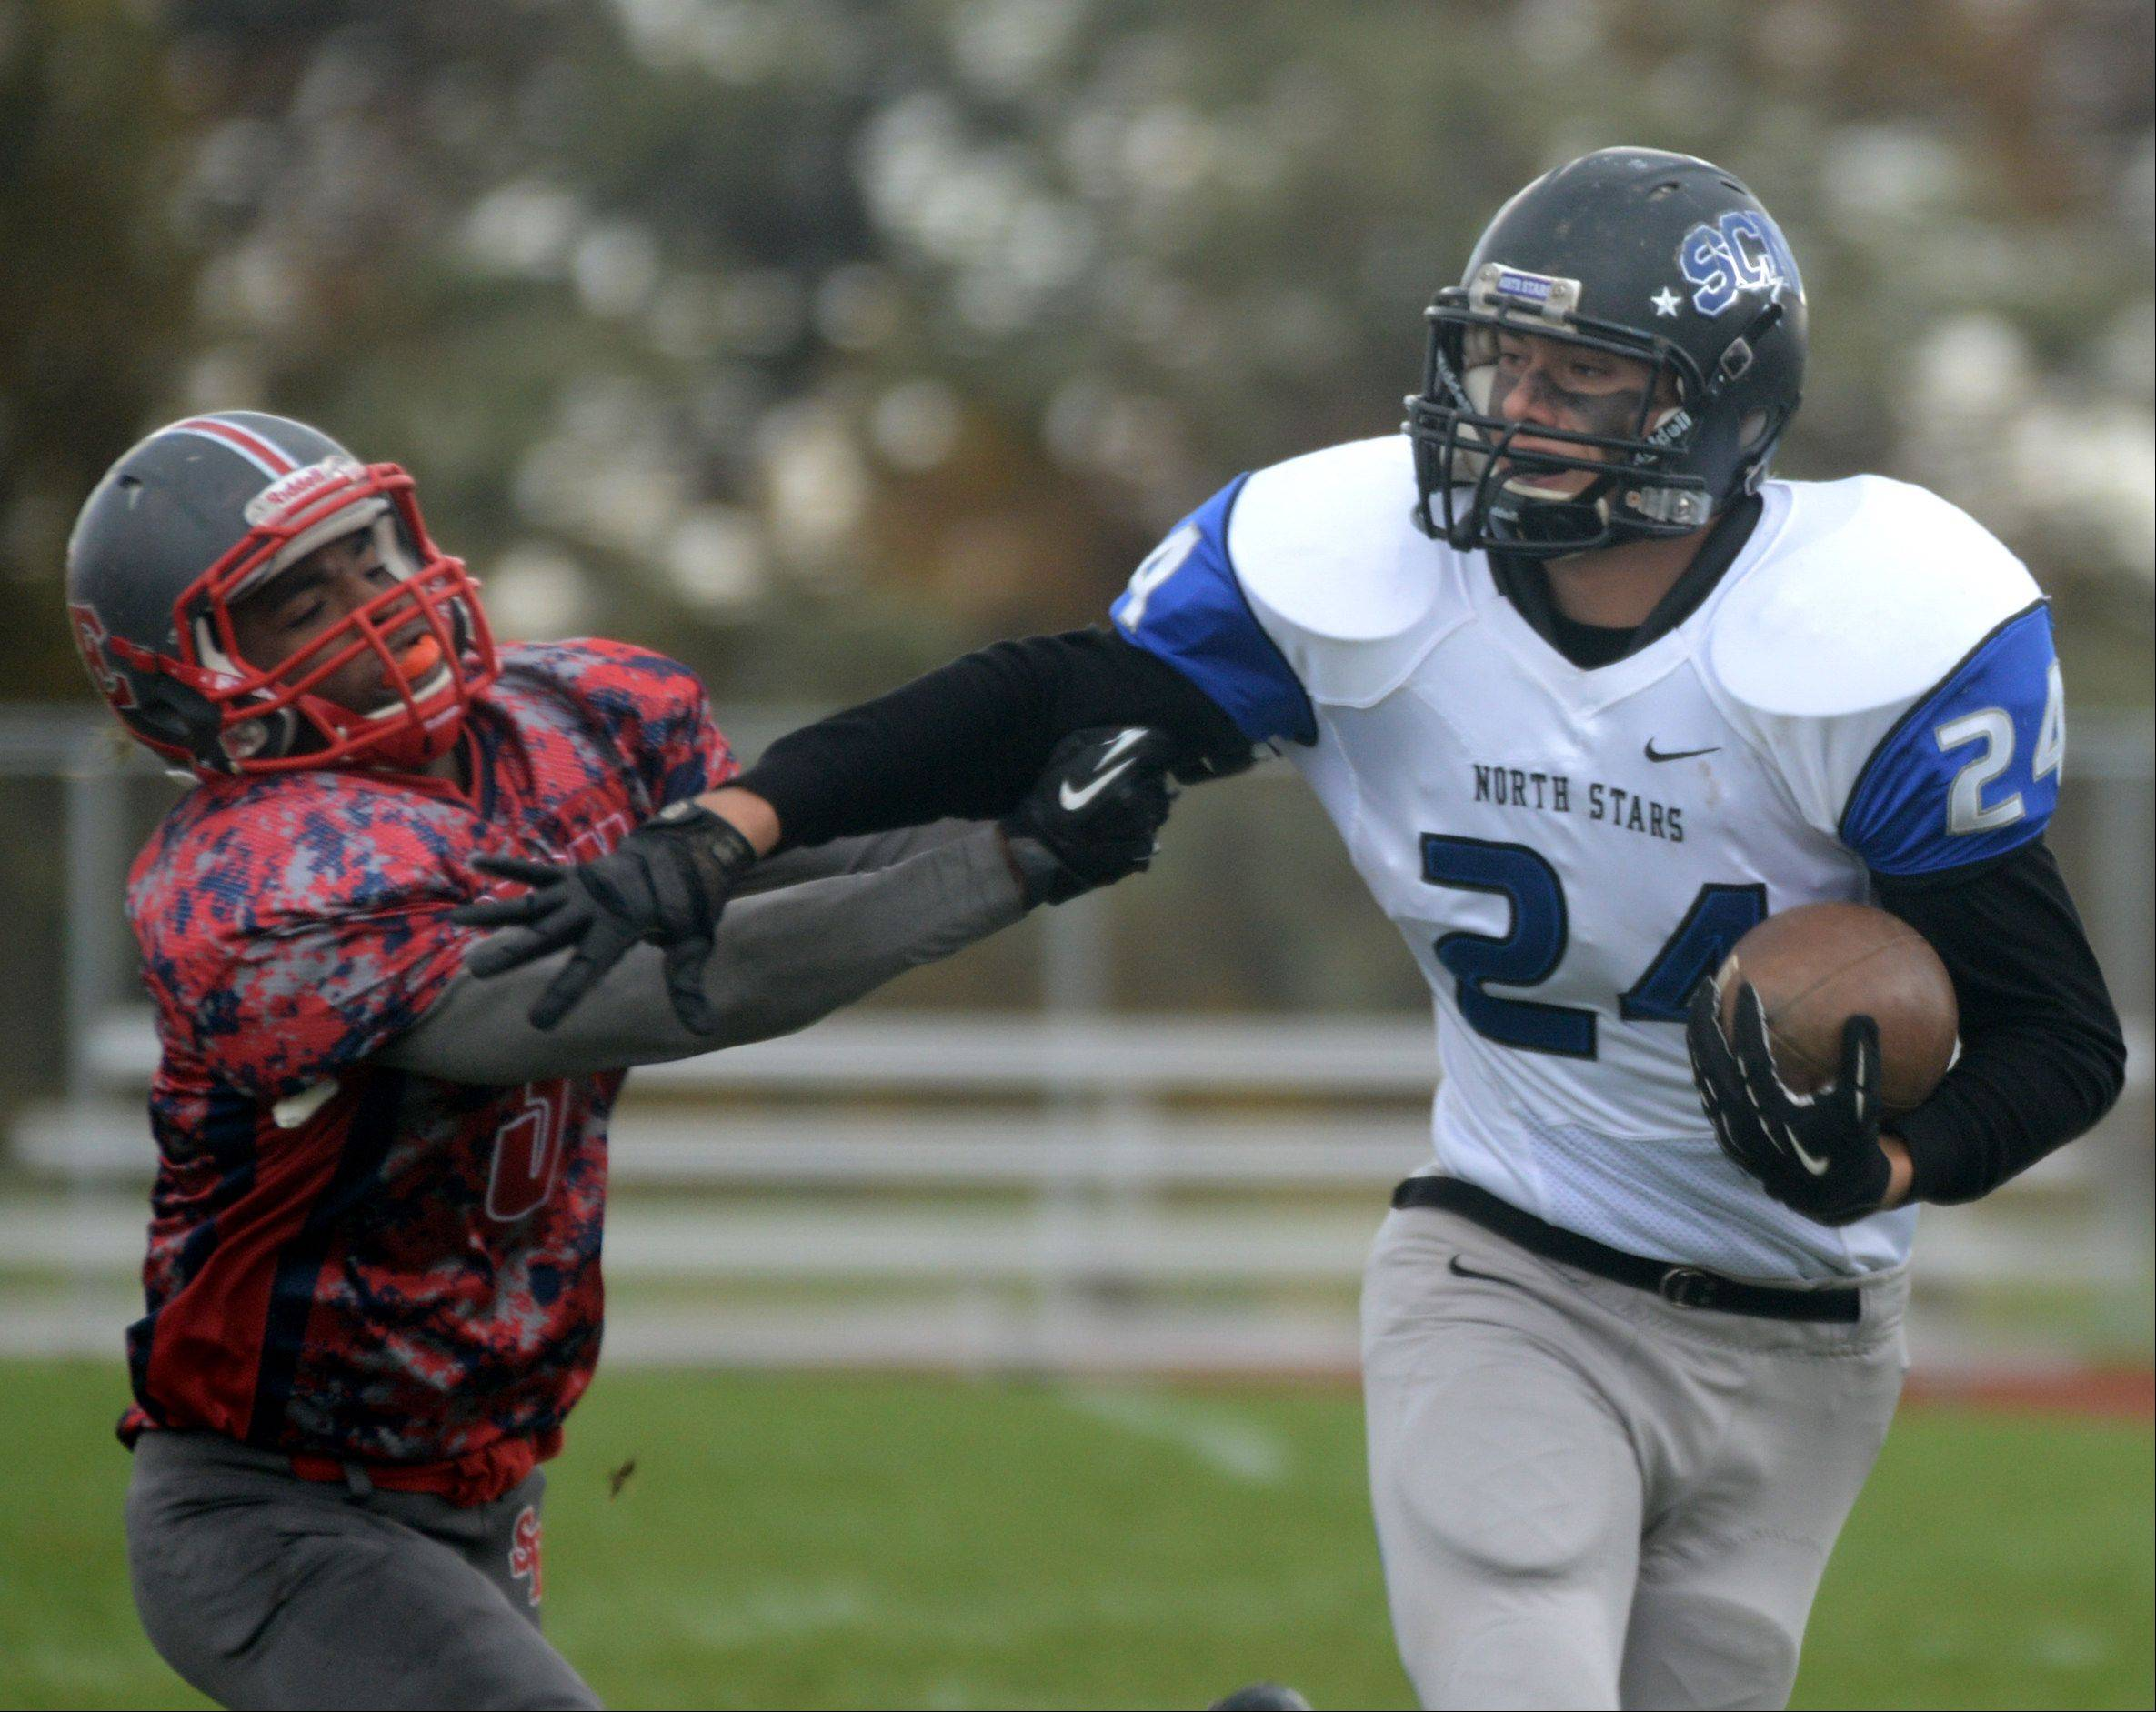 South Elgin's TeQuan Cager, left, pursues St. Charles North's Evan Kurtz .